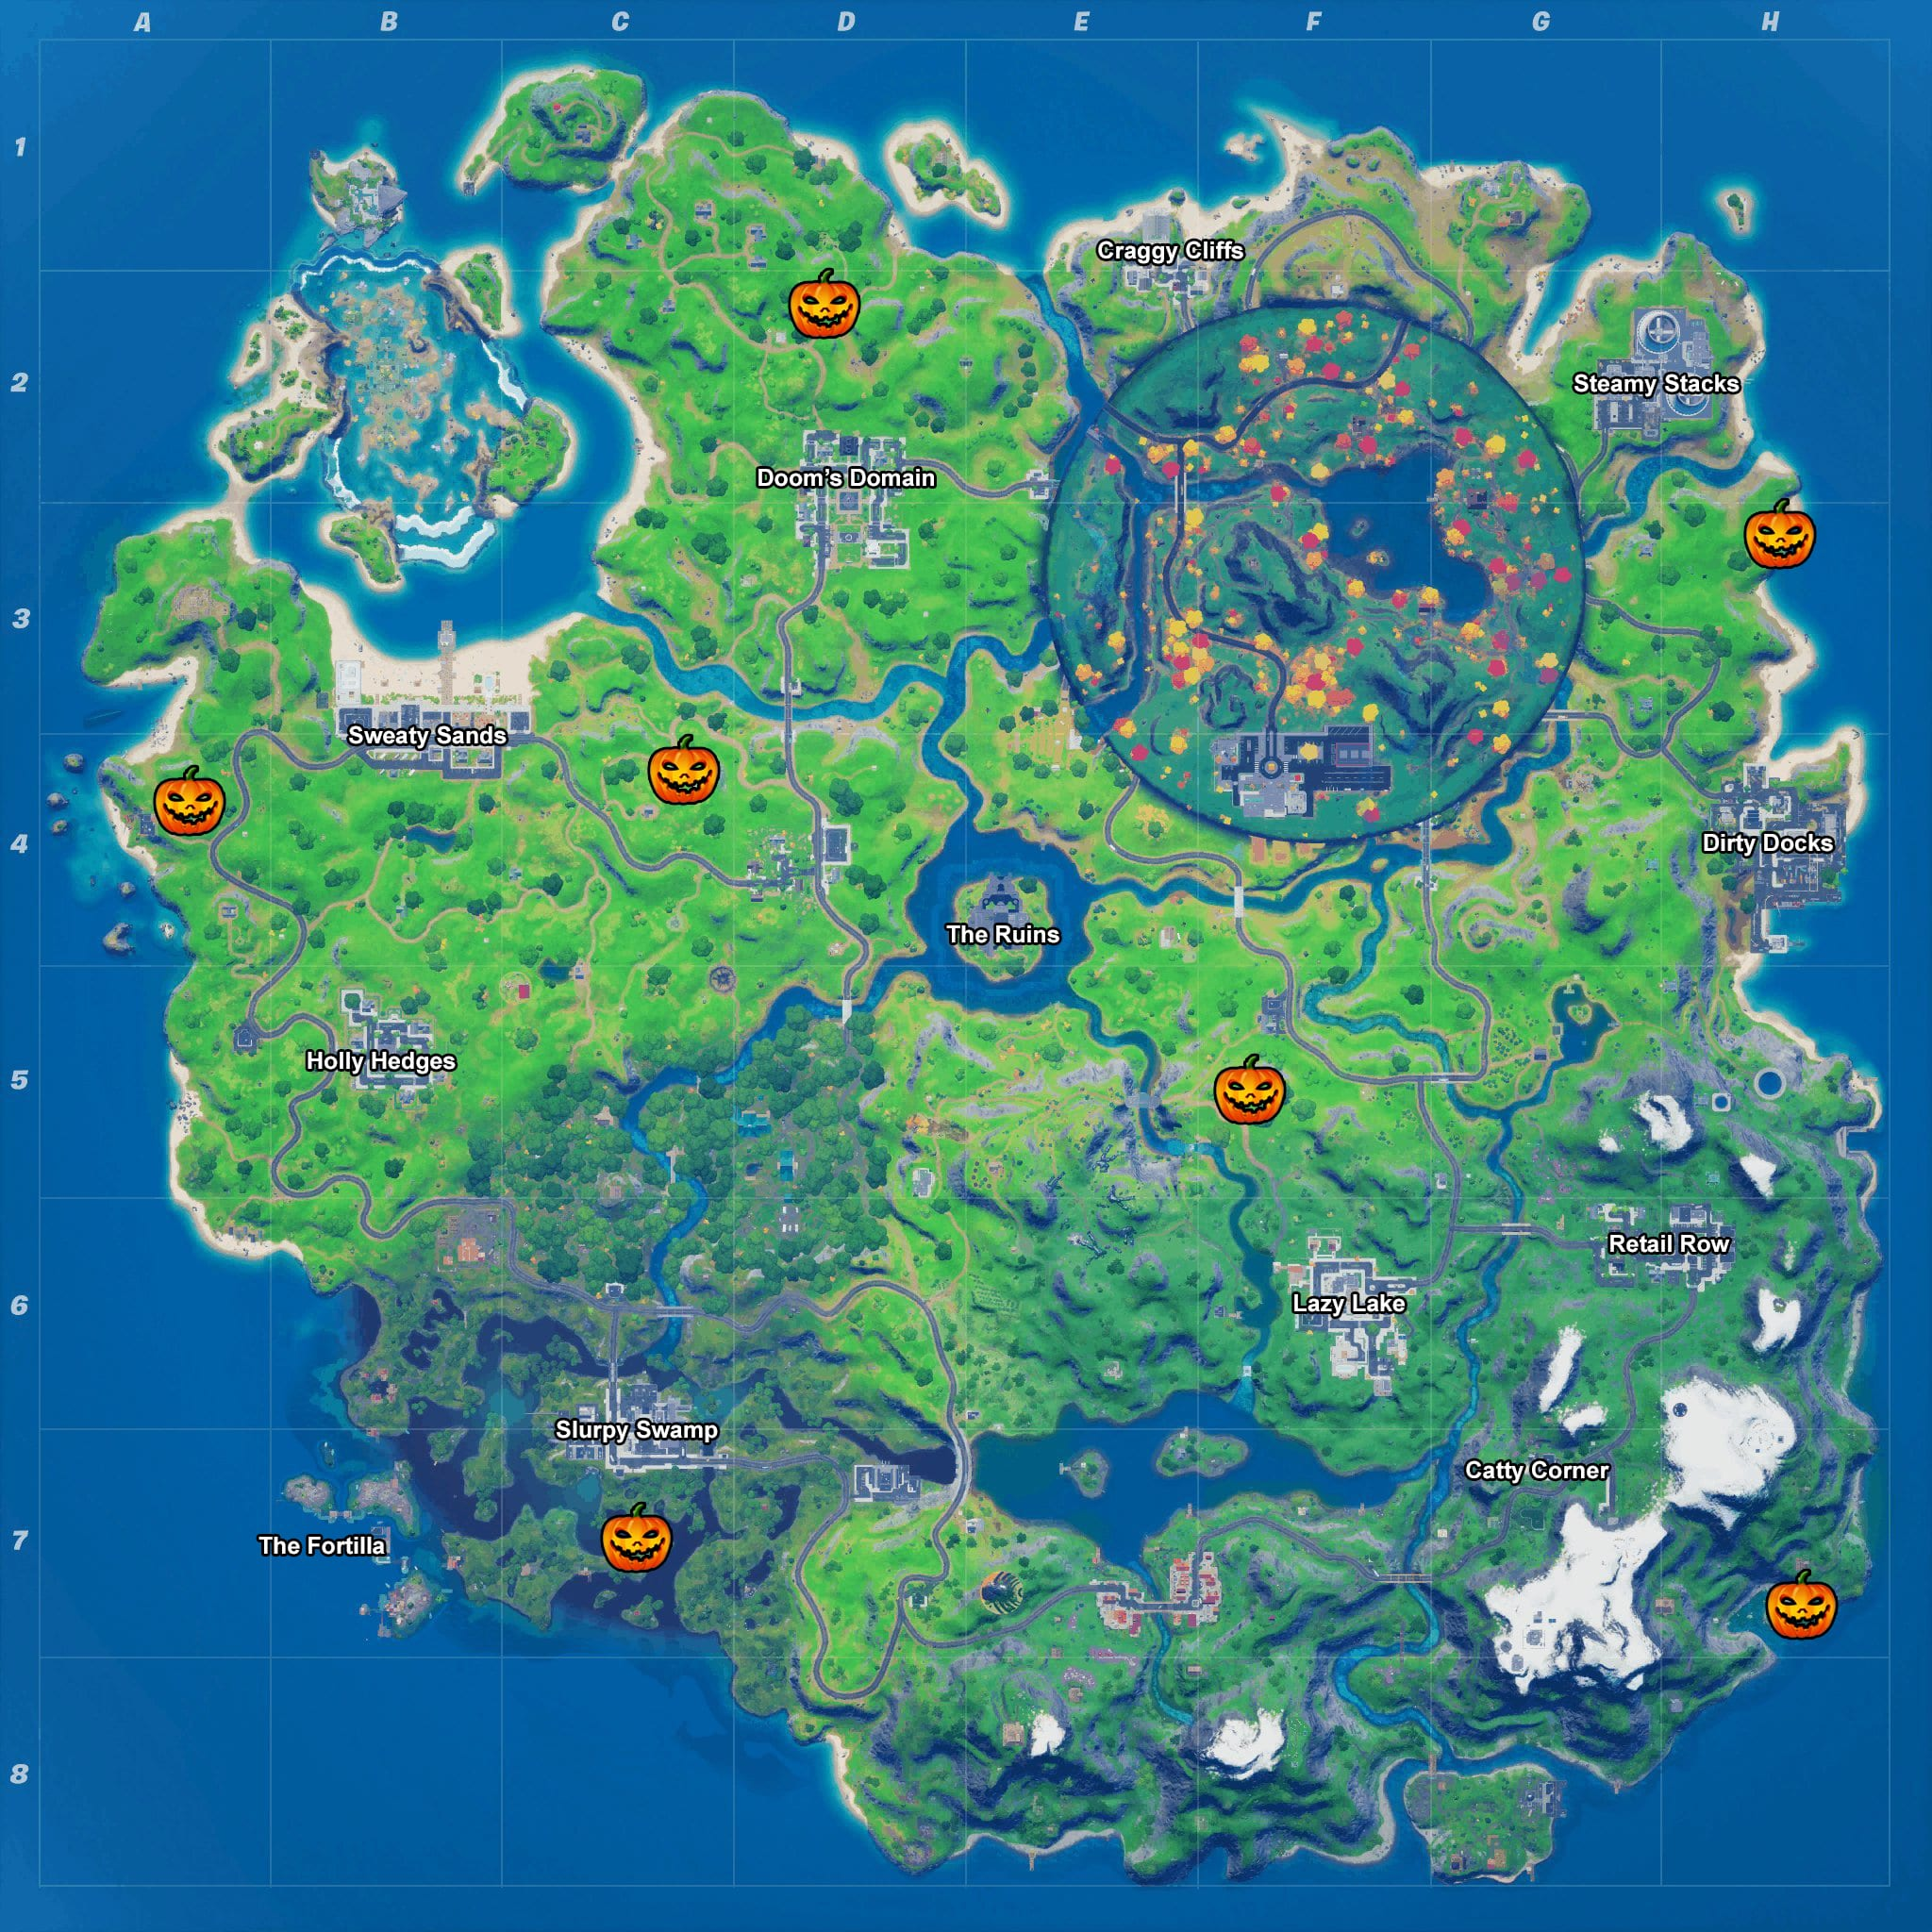 Fortnitemares-Challenge-Map-Witch-Shack